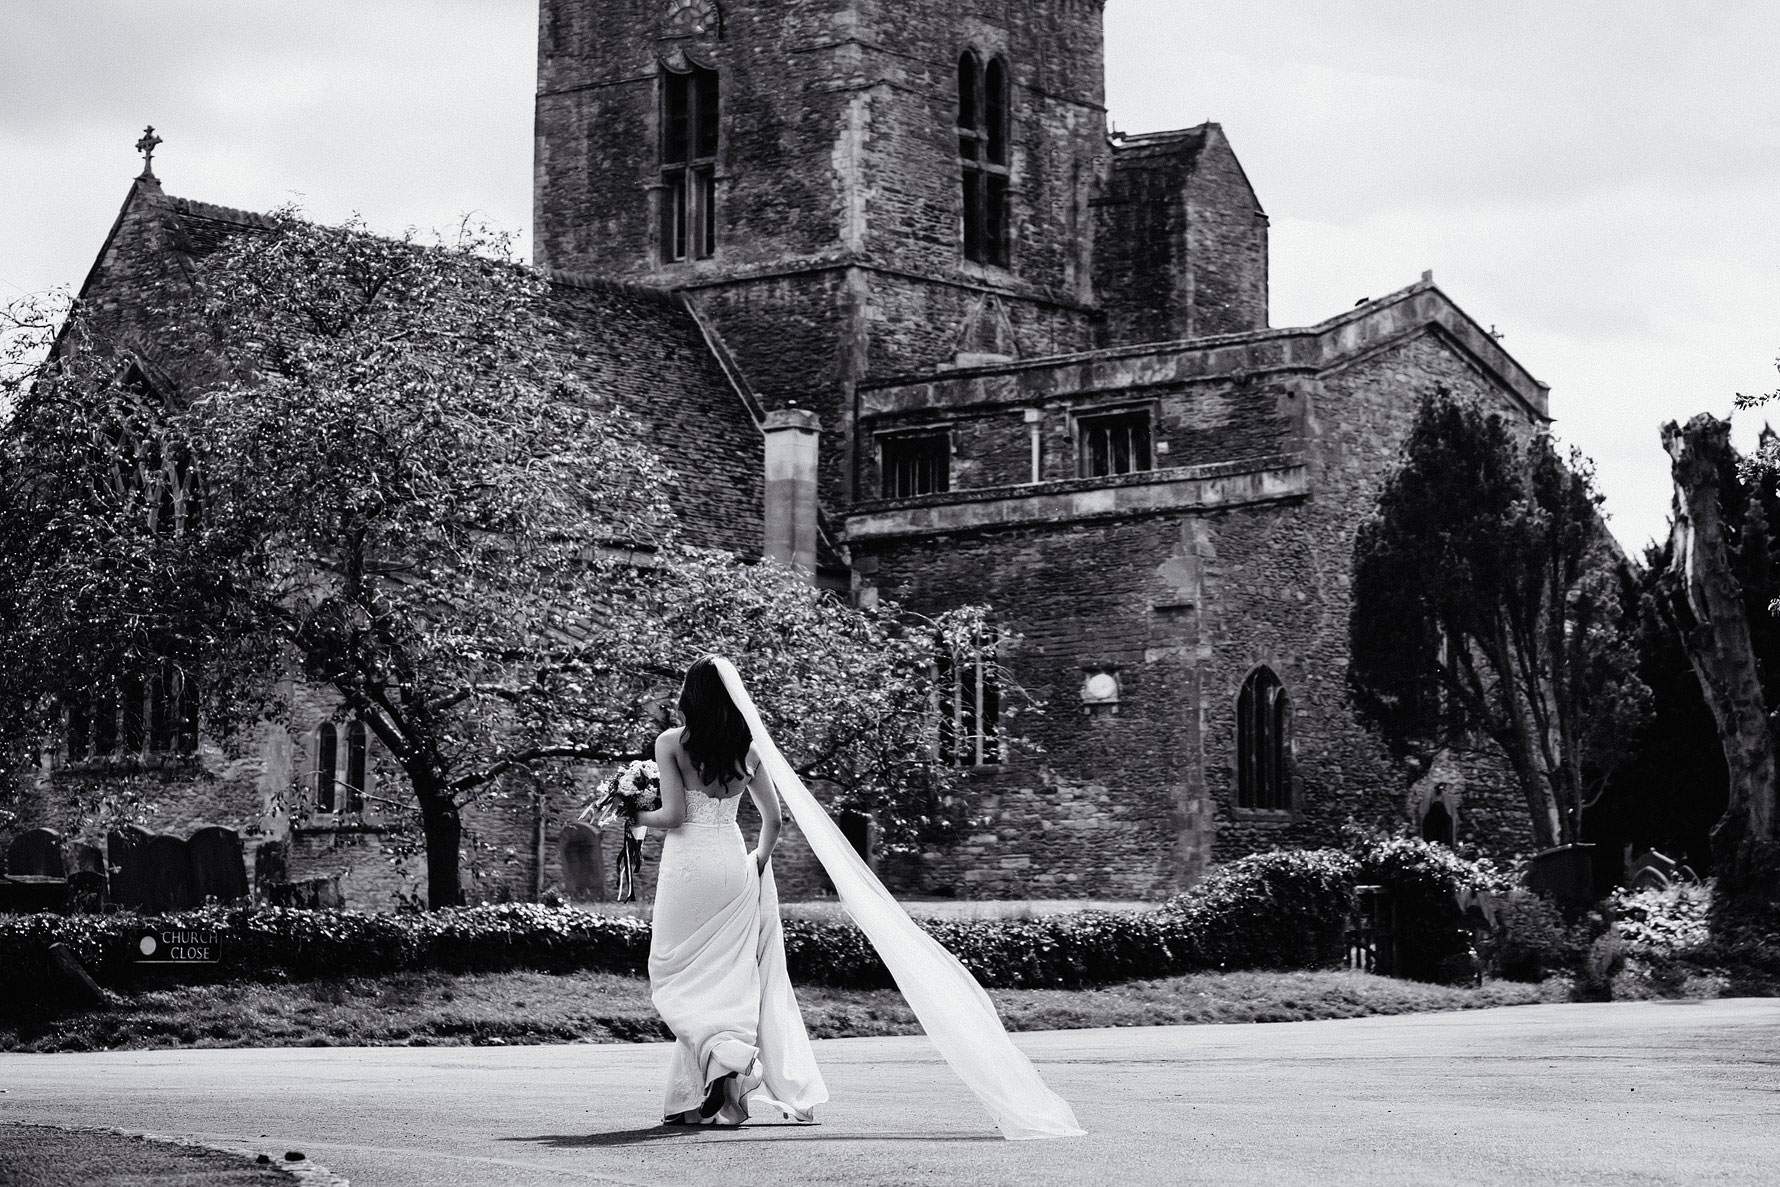 a documentary image of a bride